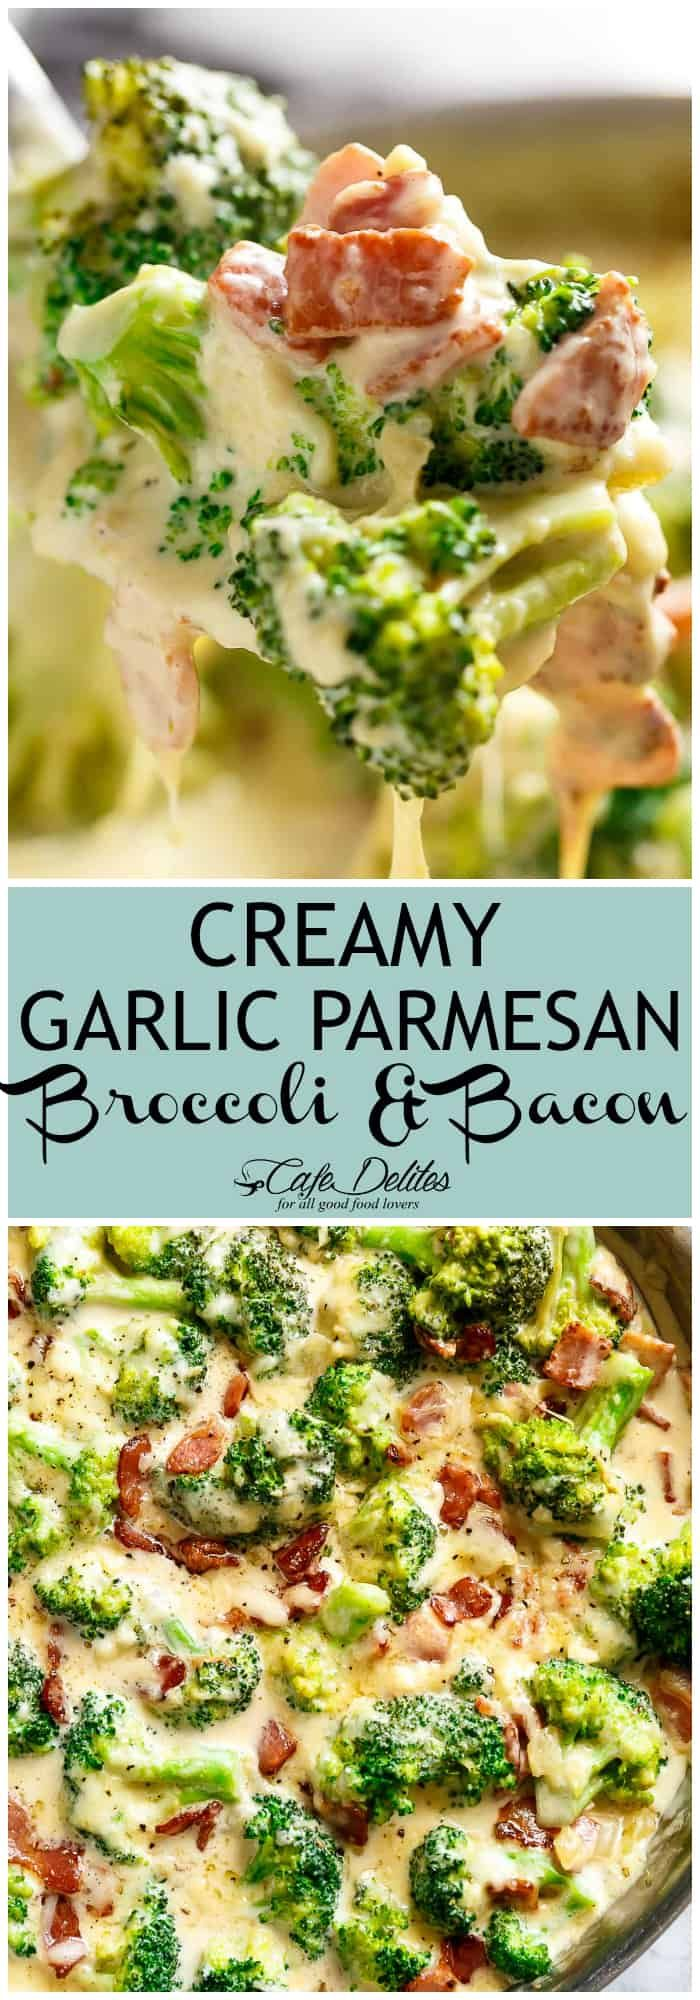 Creamy Garlic Parmesan Broccoli & Bacon is an unforgettable side dish! Pan fried broccoli and crispy bacon are baked in a cheesy creamy parmesan garlic sauce! Topped with bubbling mozzarella, this recipe is guaranteed to convert ANY non-vegetable lover to fall head over heels! And bonus? It's low carb!